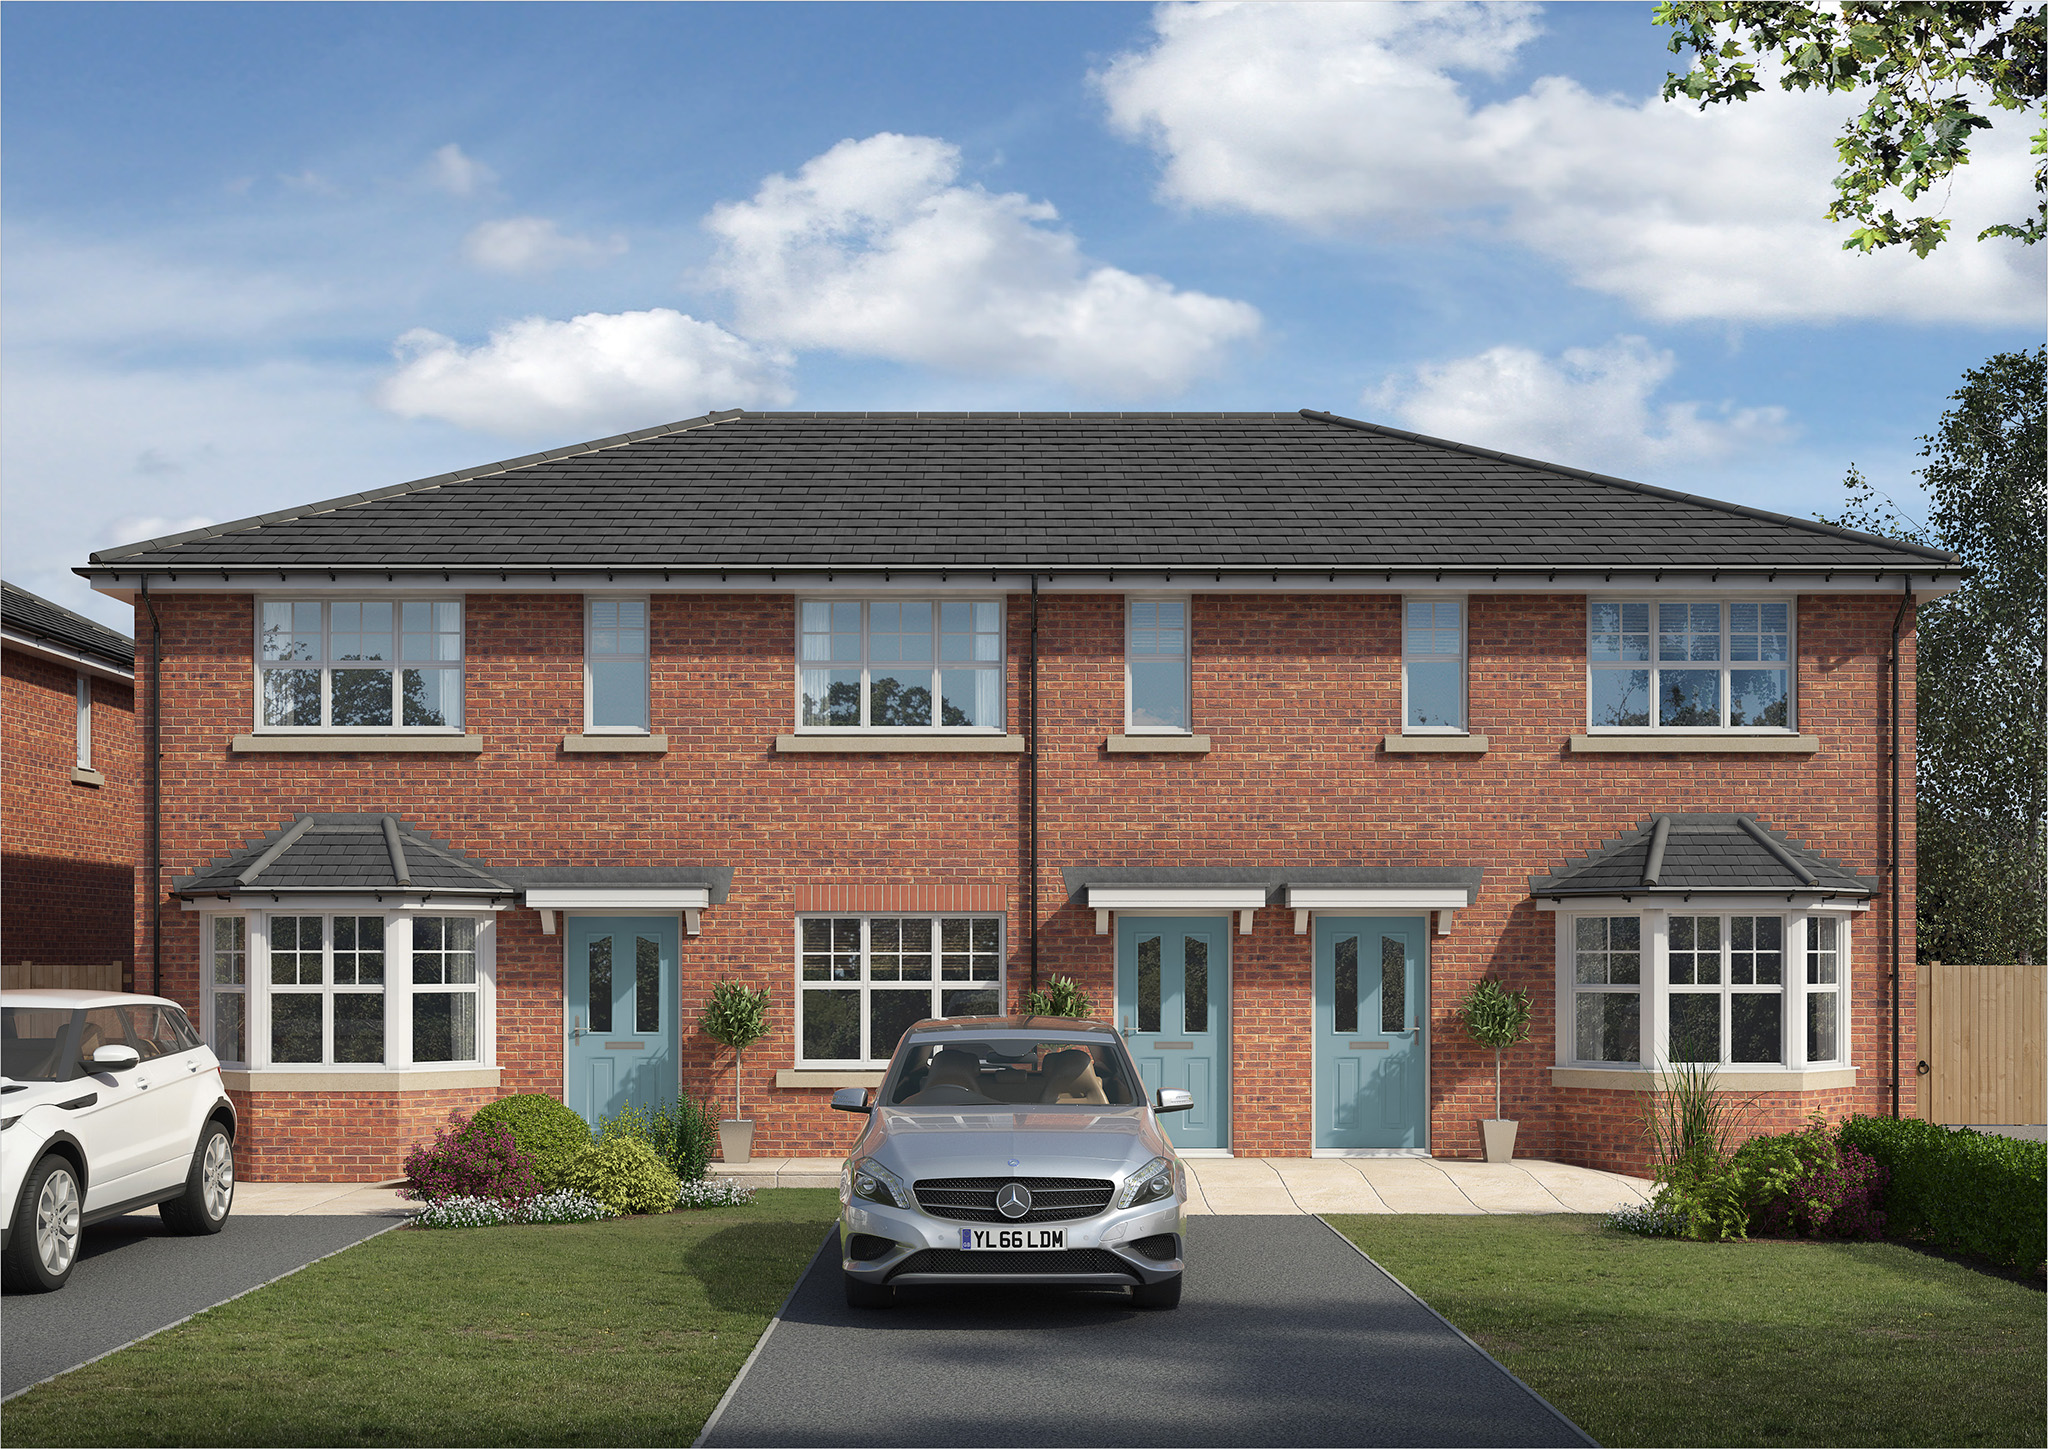 Plot 28, The Heaton